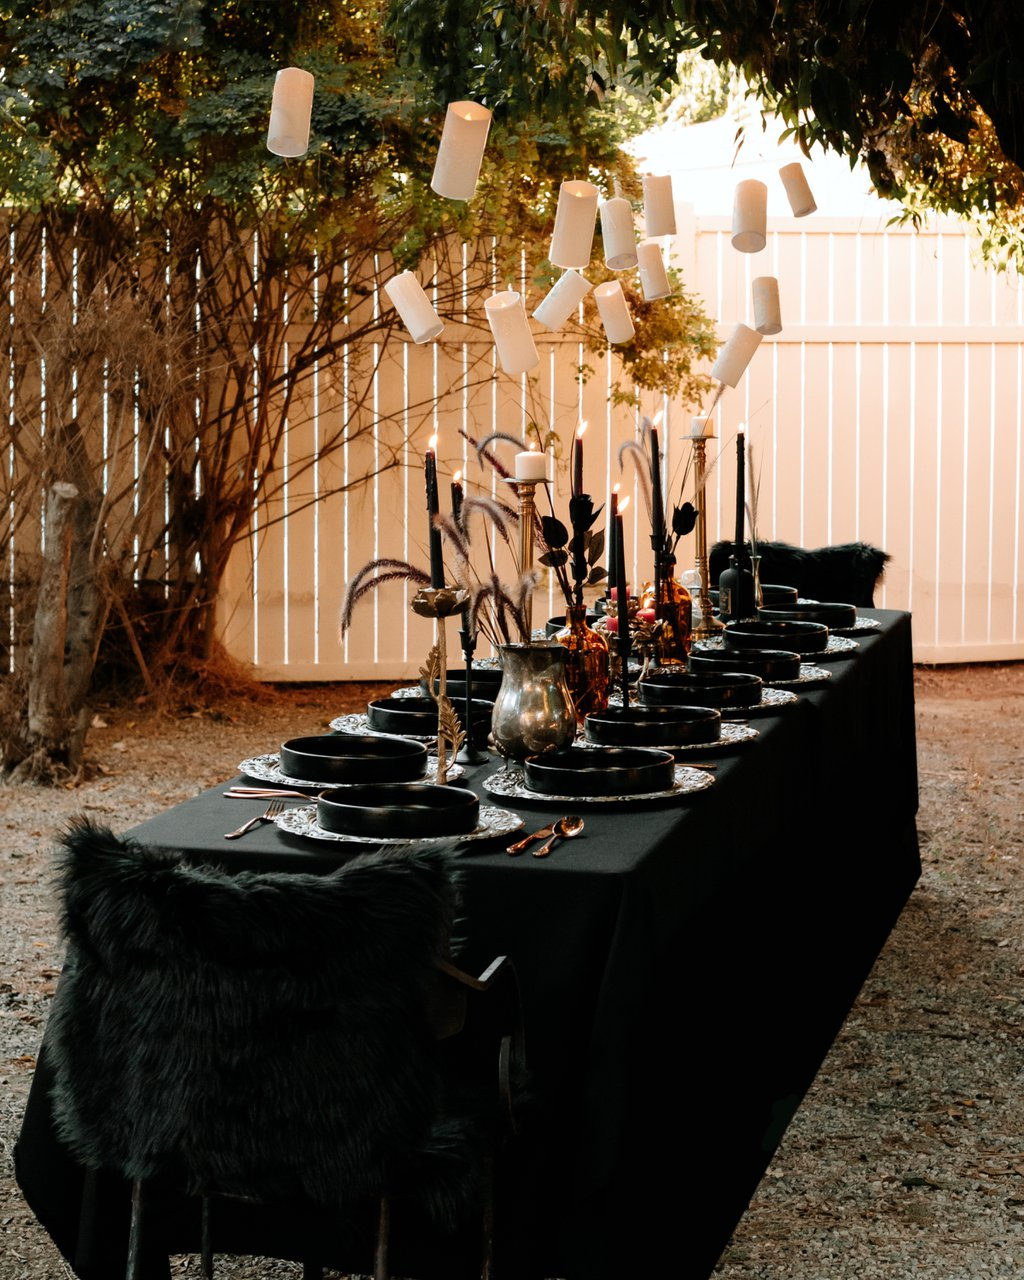 A Witchy Dinner photo 20377F17-1E42-4F80-9C37-55C71073EE3E.jpg